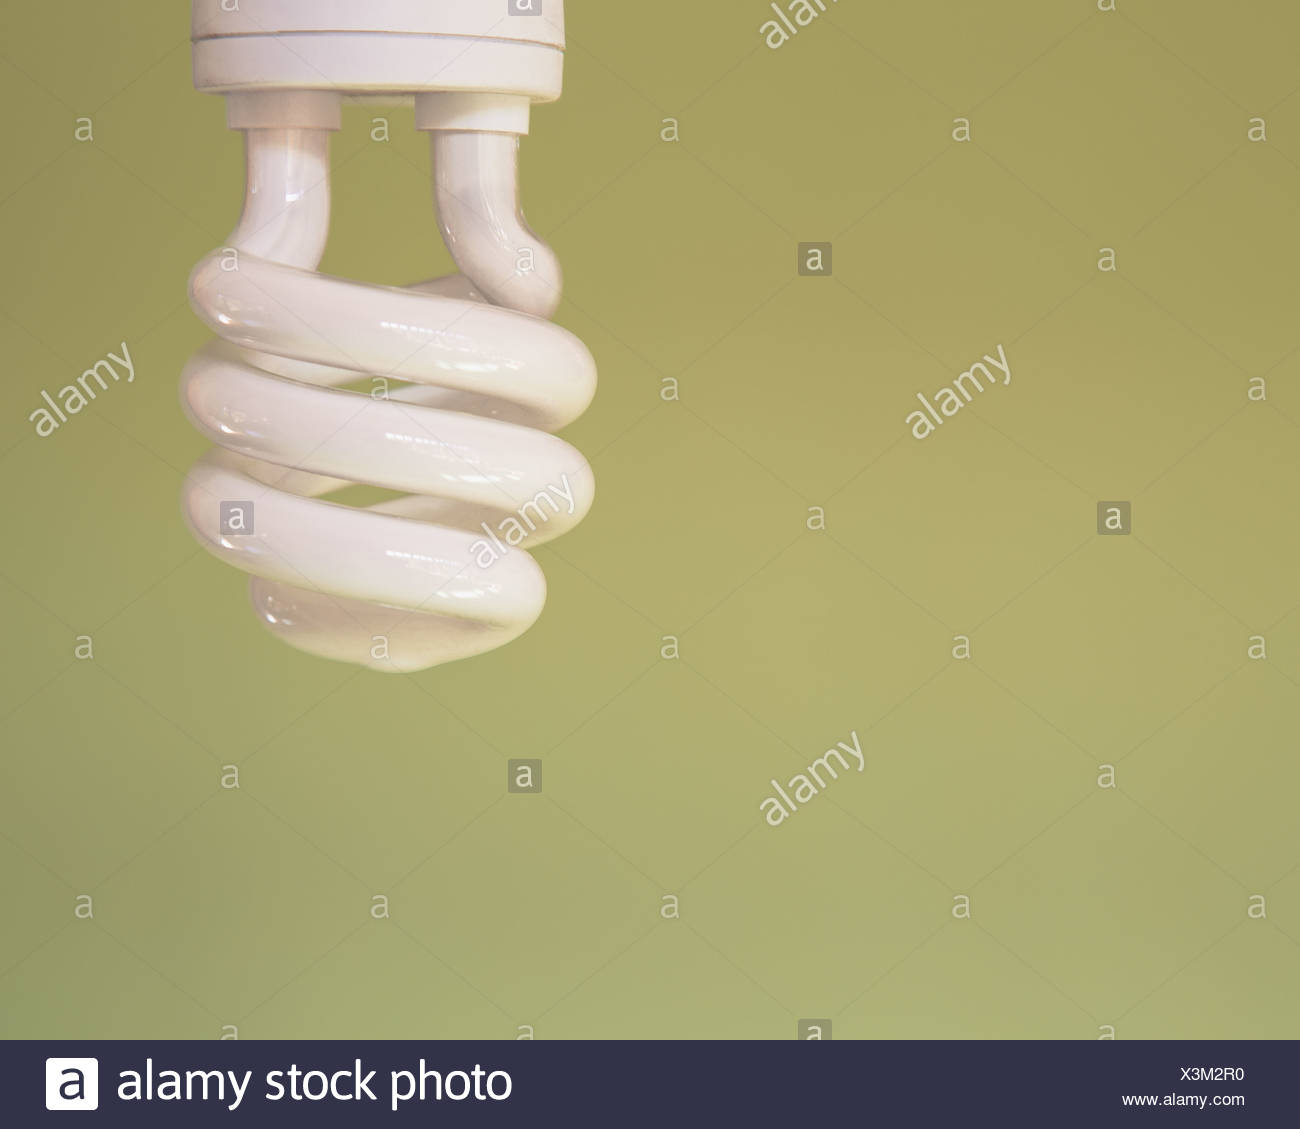 energy efficient fluorescent light bulb CFL Stock Photo: 277651108 ...